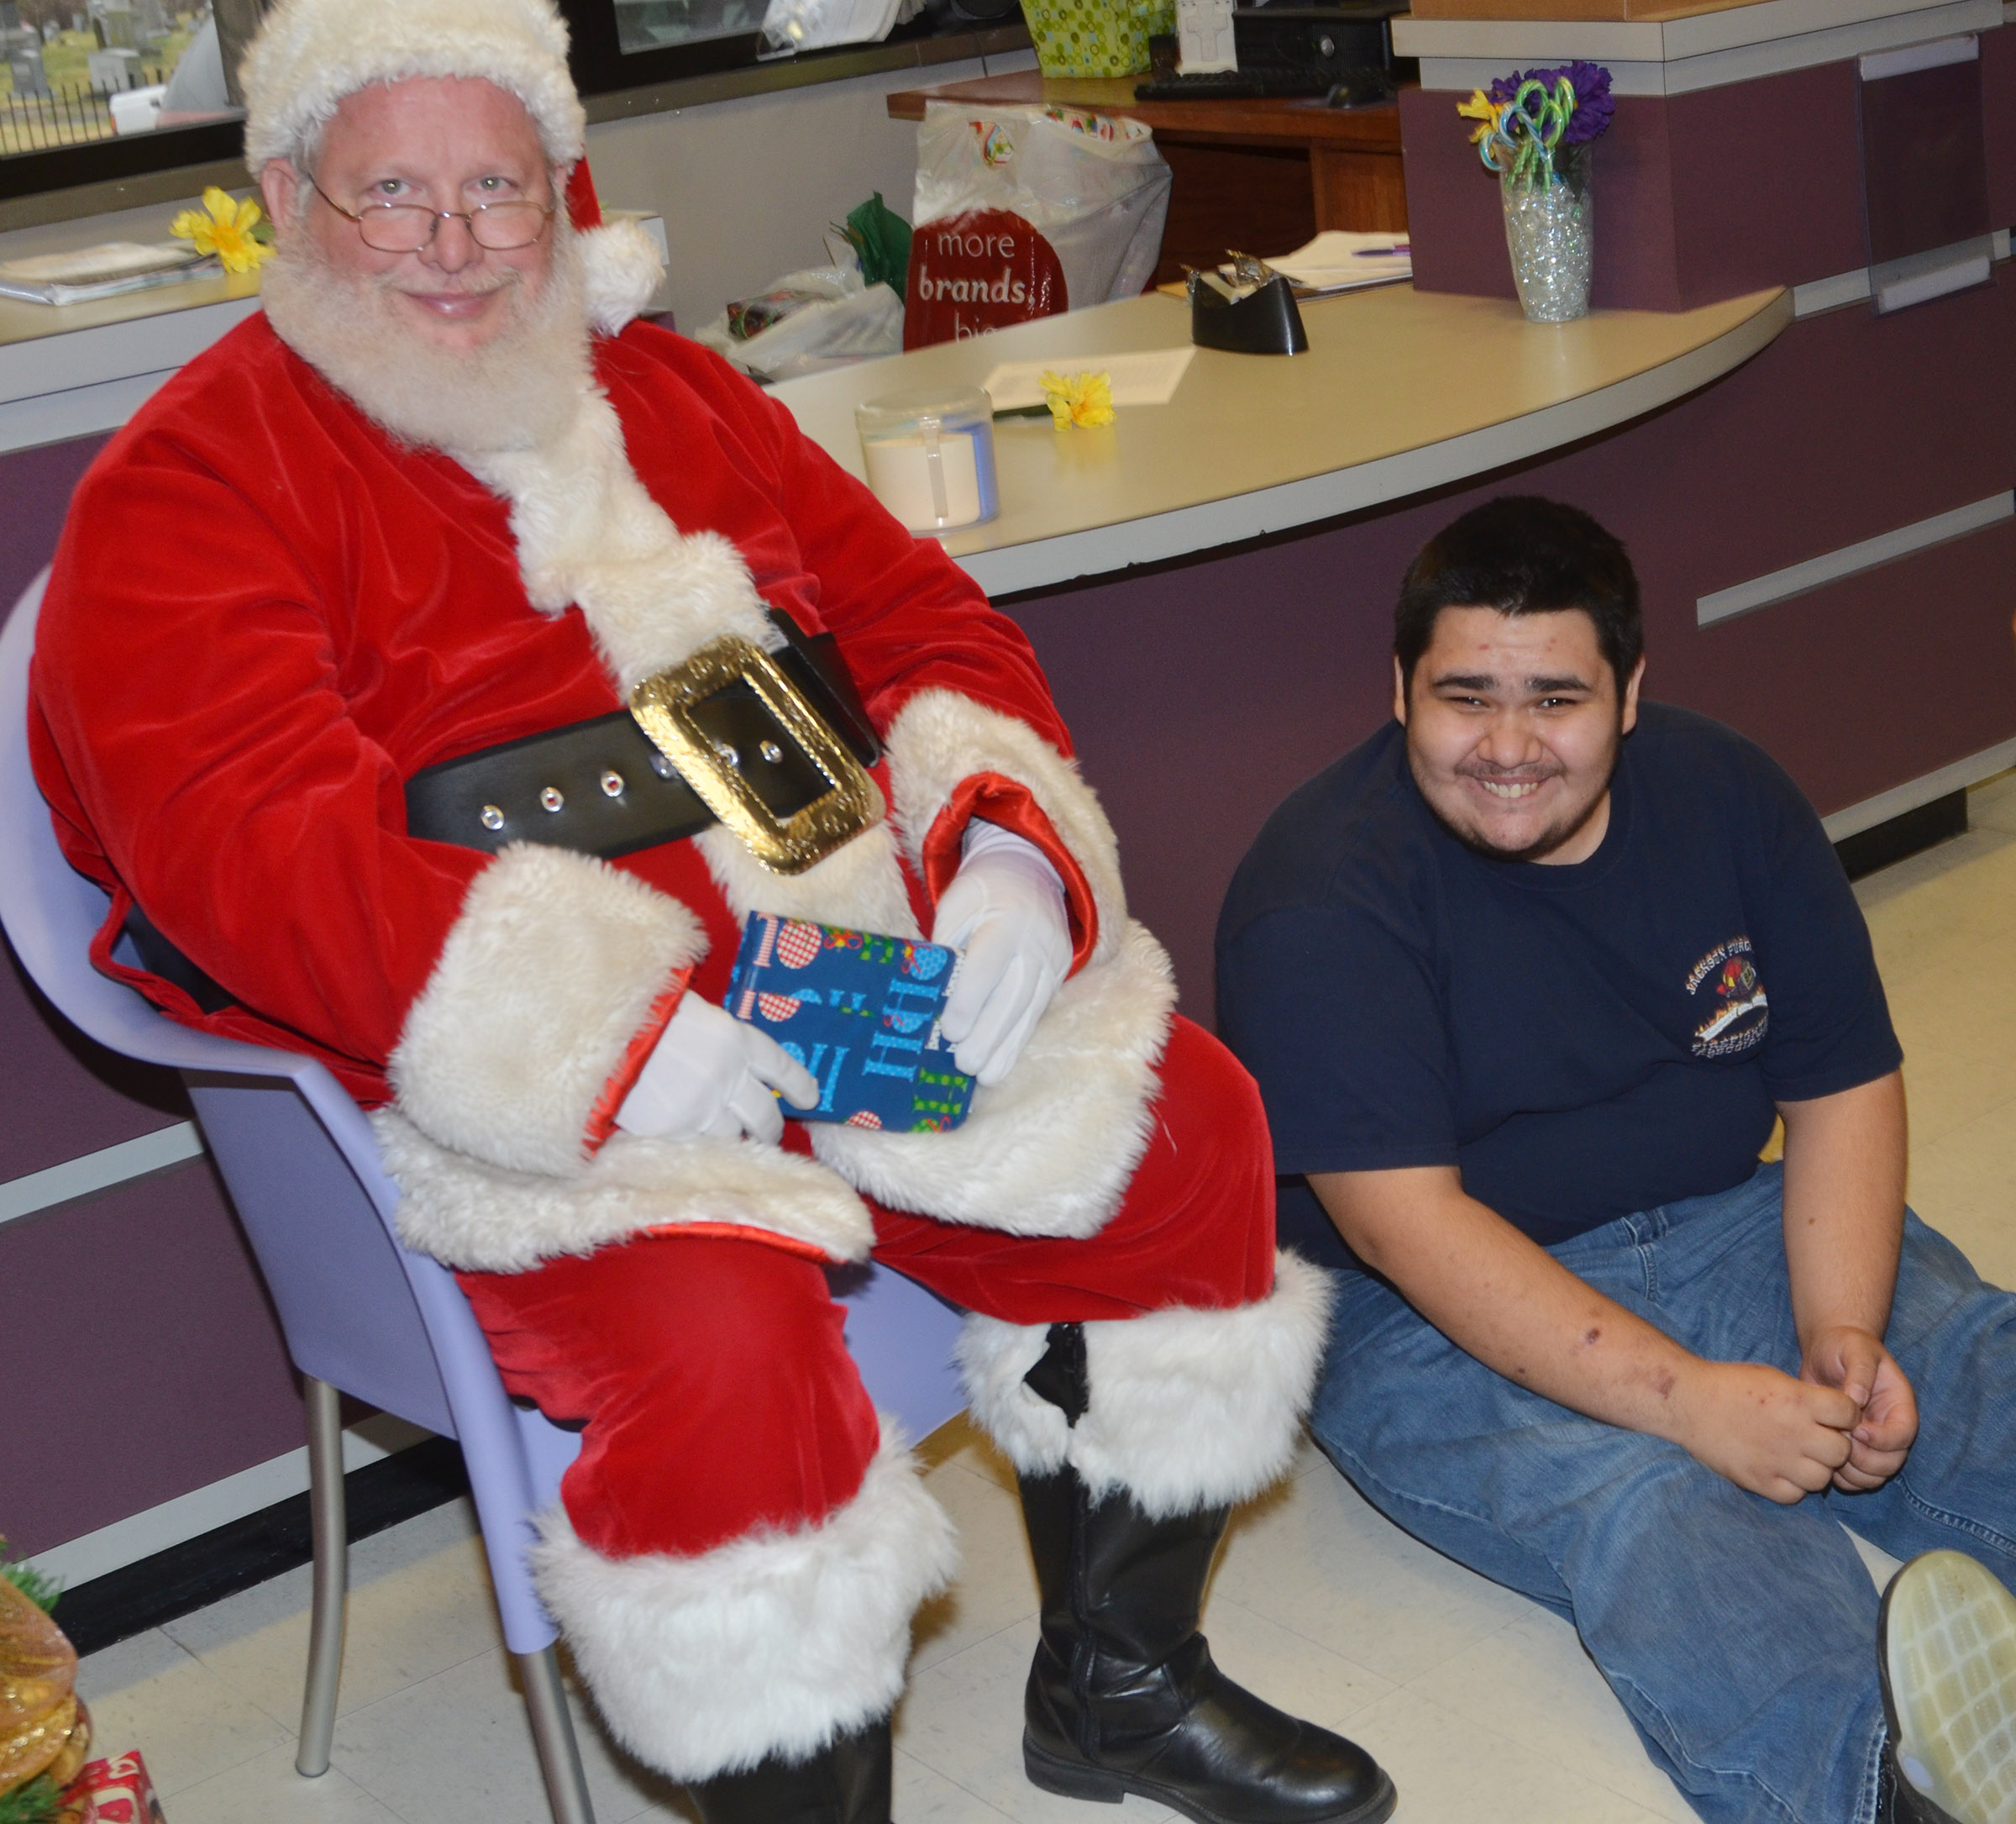 CHS senior Robert Tungate smiles for a photo with Santa.